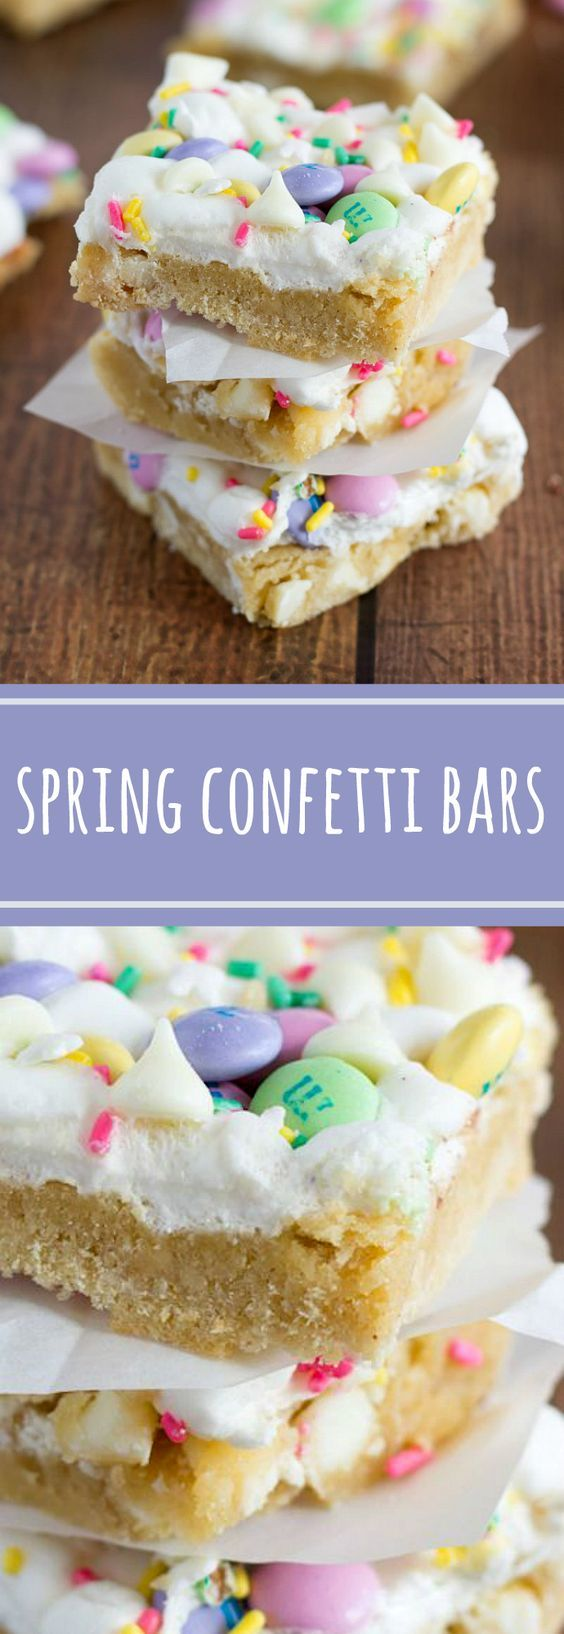 Confetti bars made with Spring colored MandM's white chocolate Spring sprinkles and gooey marshmallows.